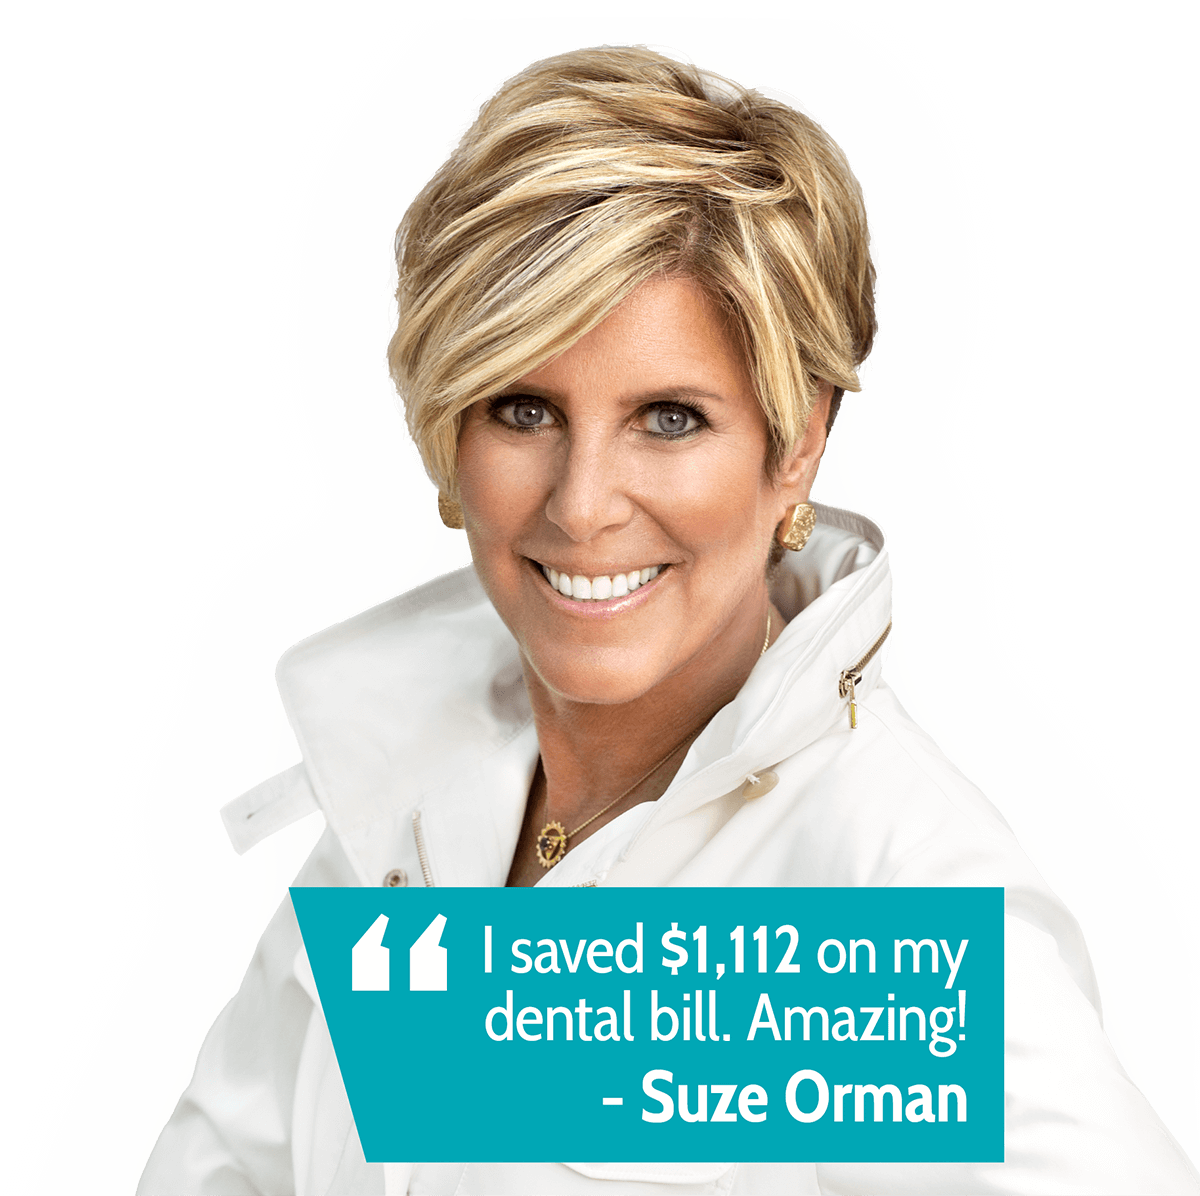 I saved $1,112 on my dental bill, Amazing! Quote by Suze Orman